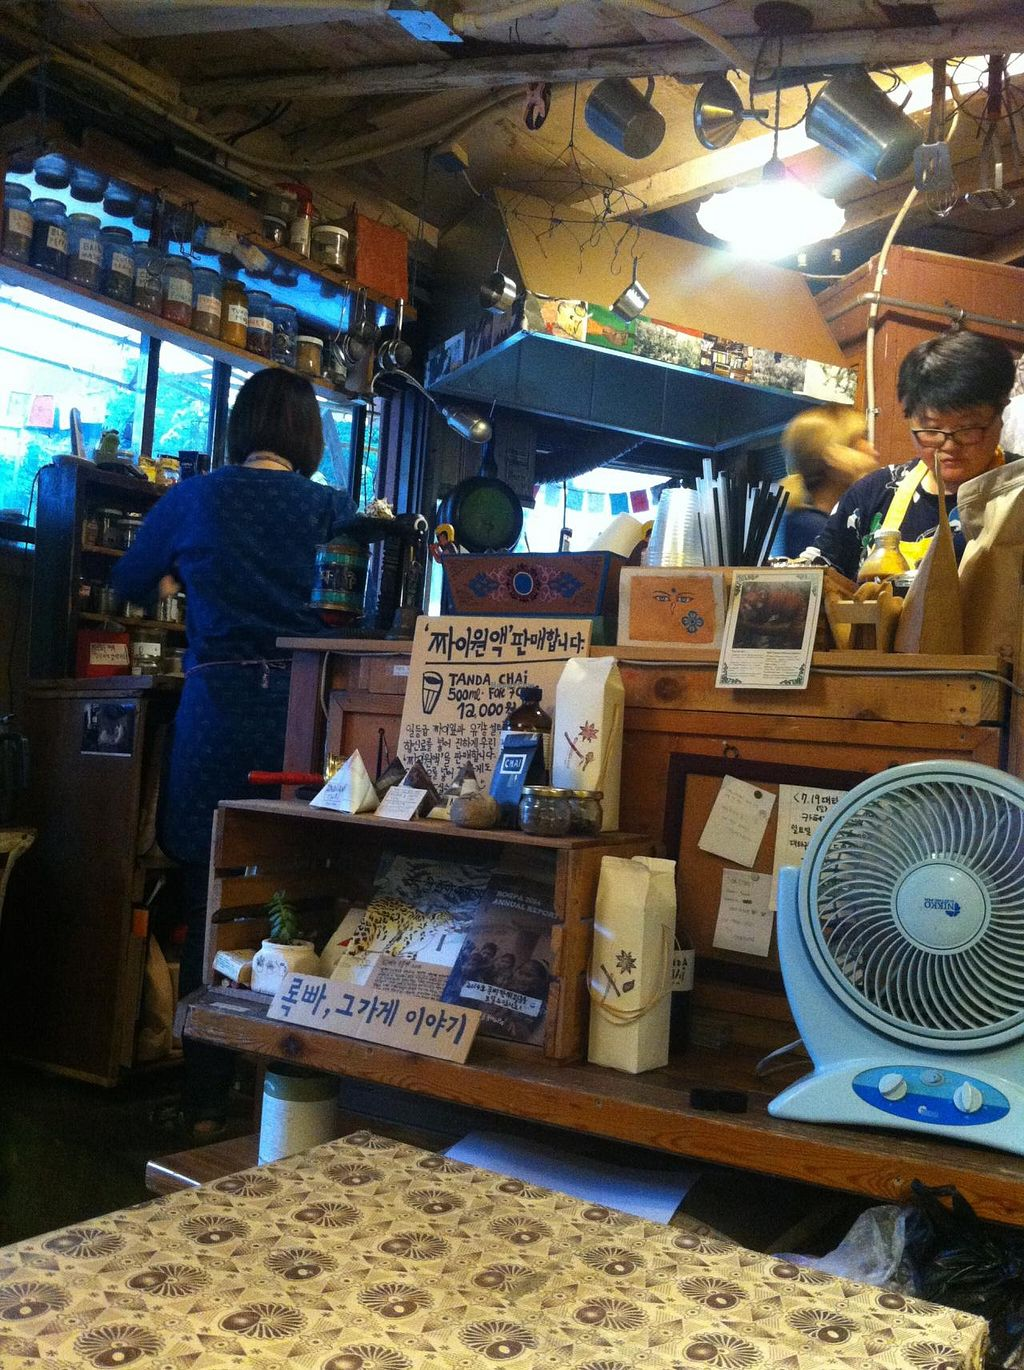 """Photo of The Store Sajik-dong - 사직동 그 가게  by <a href=""""/members/profile/andrea.linnea"""">andrea.linnea</a> <br/>The kitchen  <br/> July 21, 2015  - <a href='/contact/abuse/image/54509/110382'>Report</a>"""